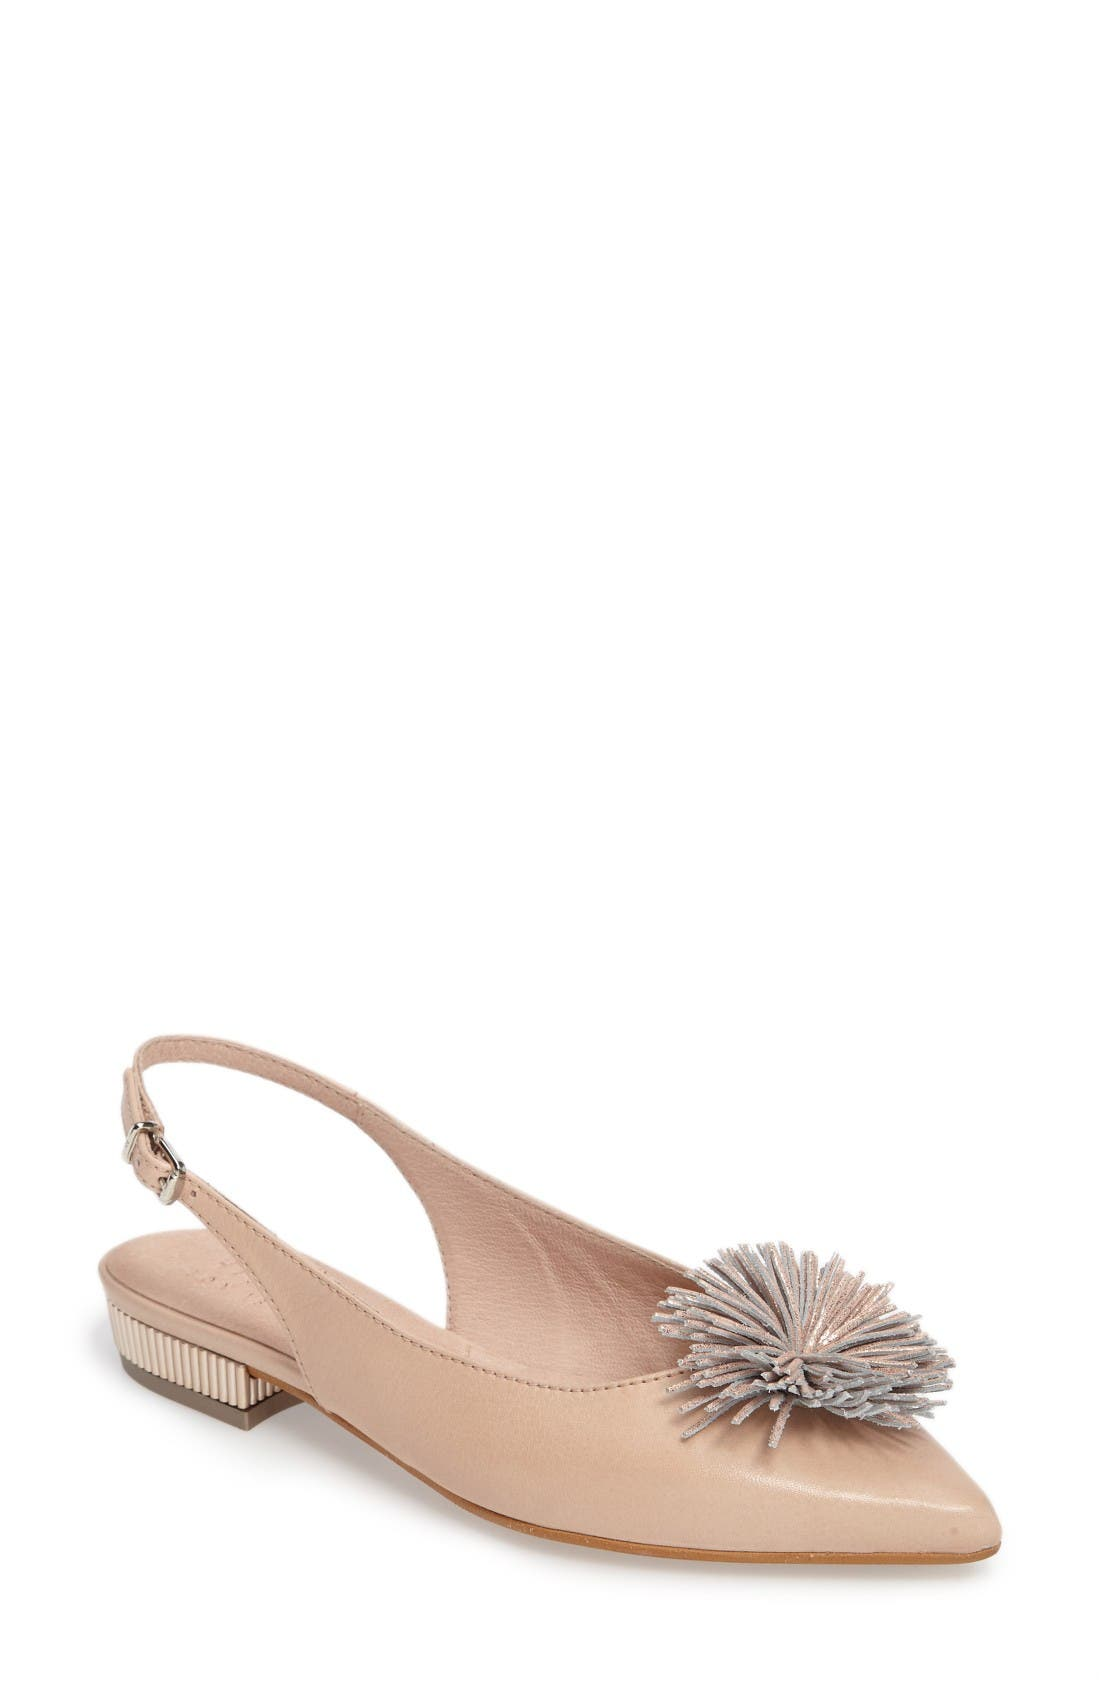 Freya Pompom Slingback Flat,                         Main,                         color, Soho Ecru Leather